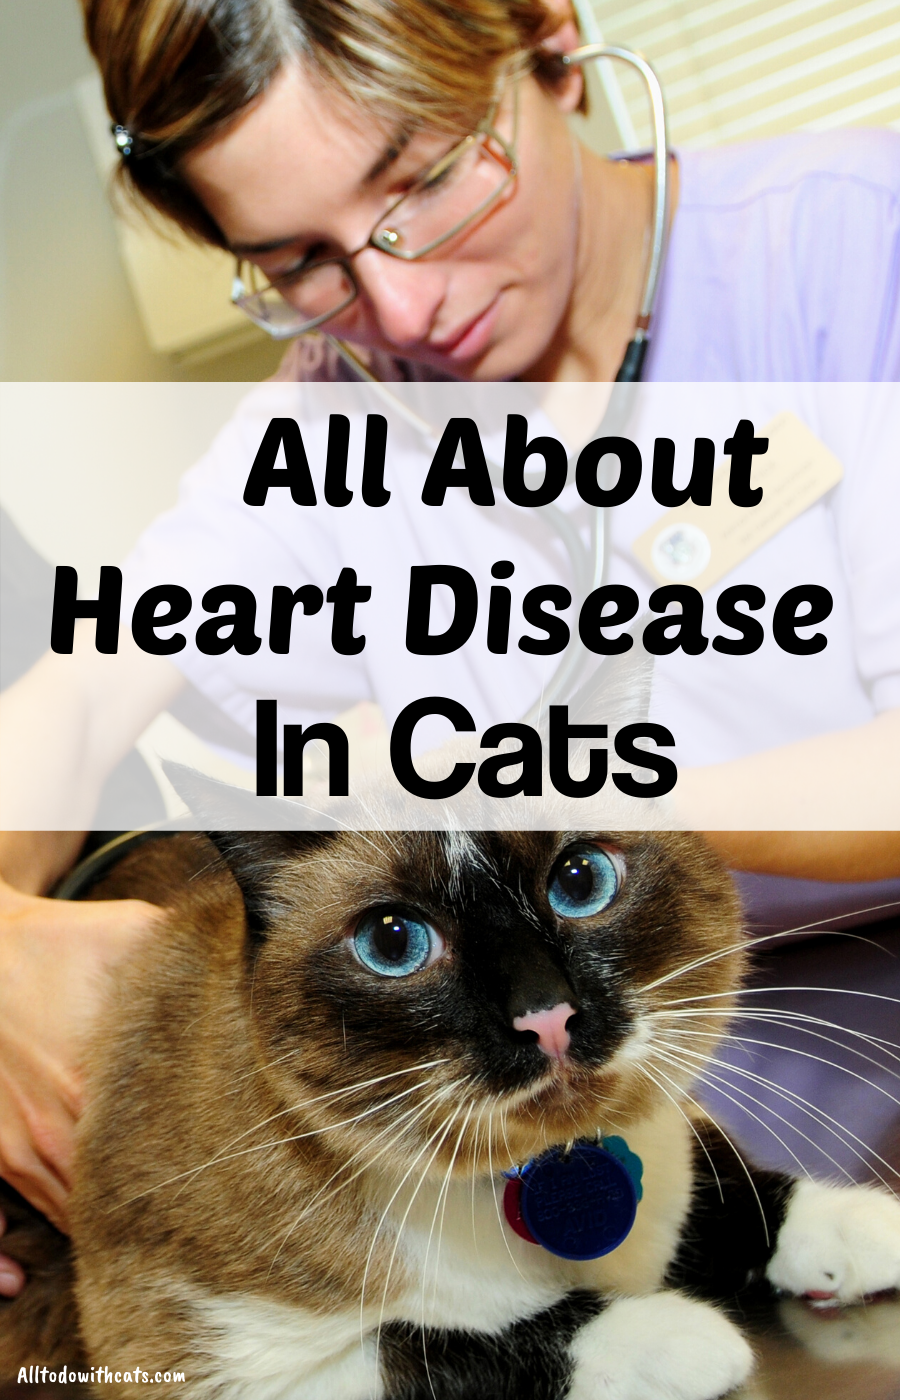 What Are The Symptoms Of Heart Disease In Cats? Heart